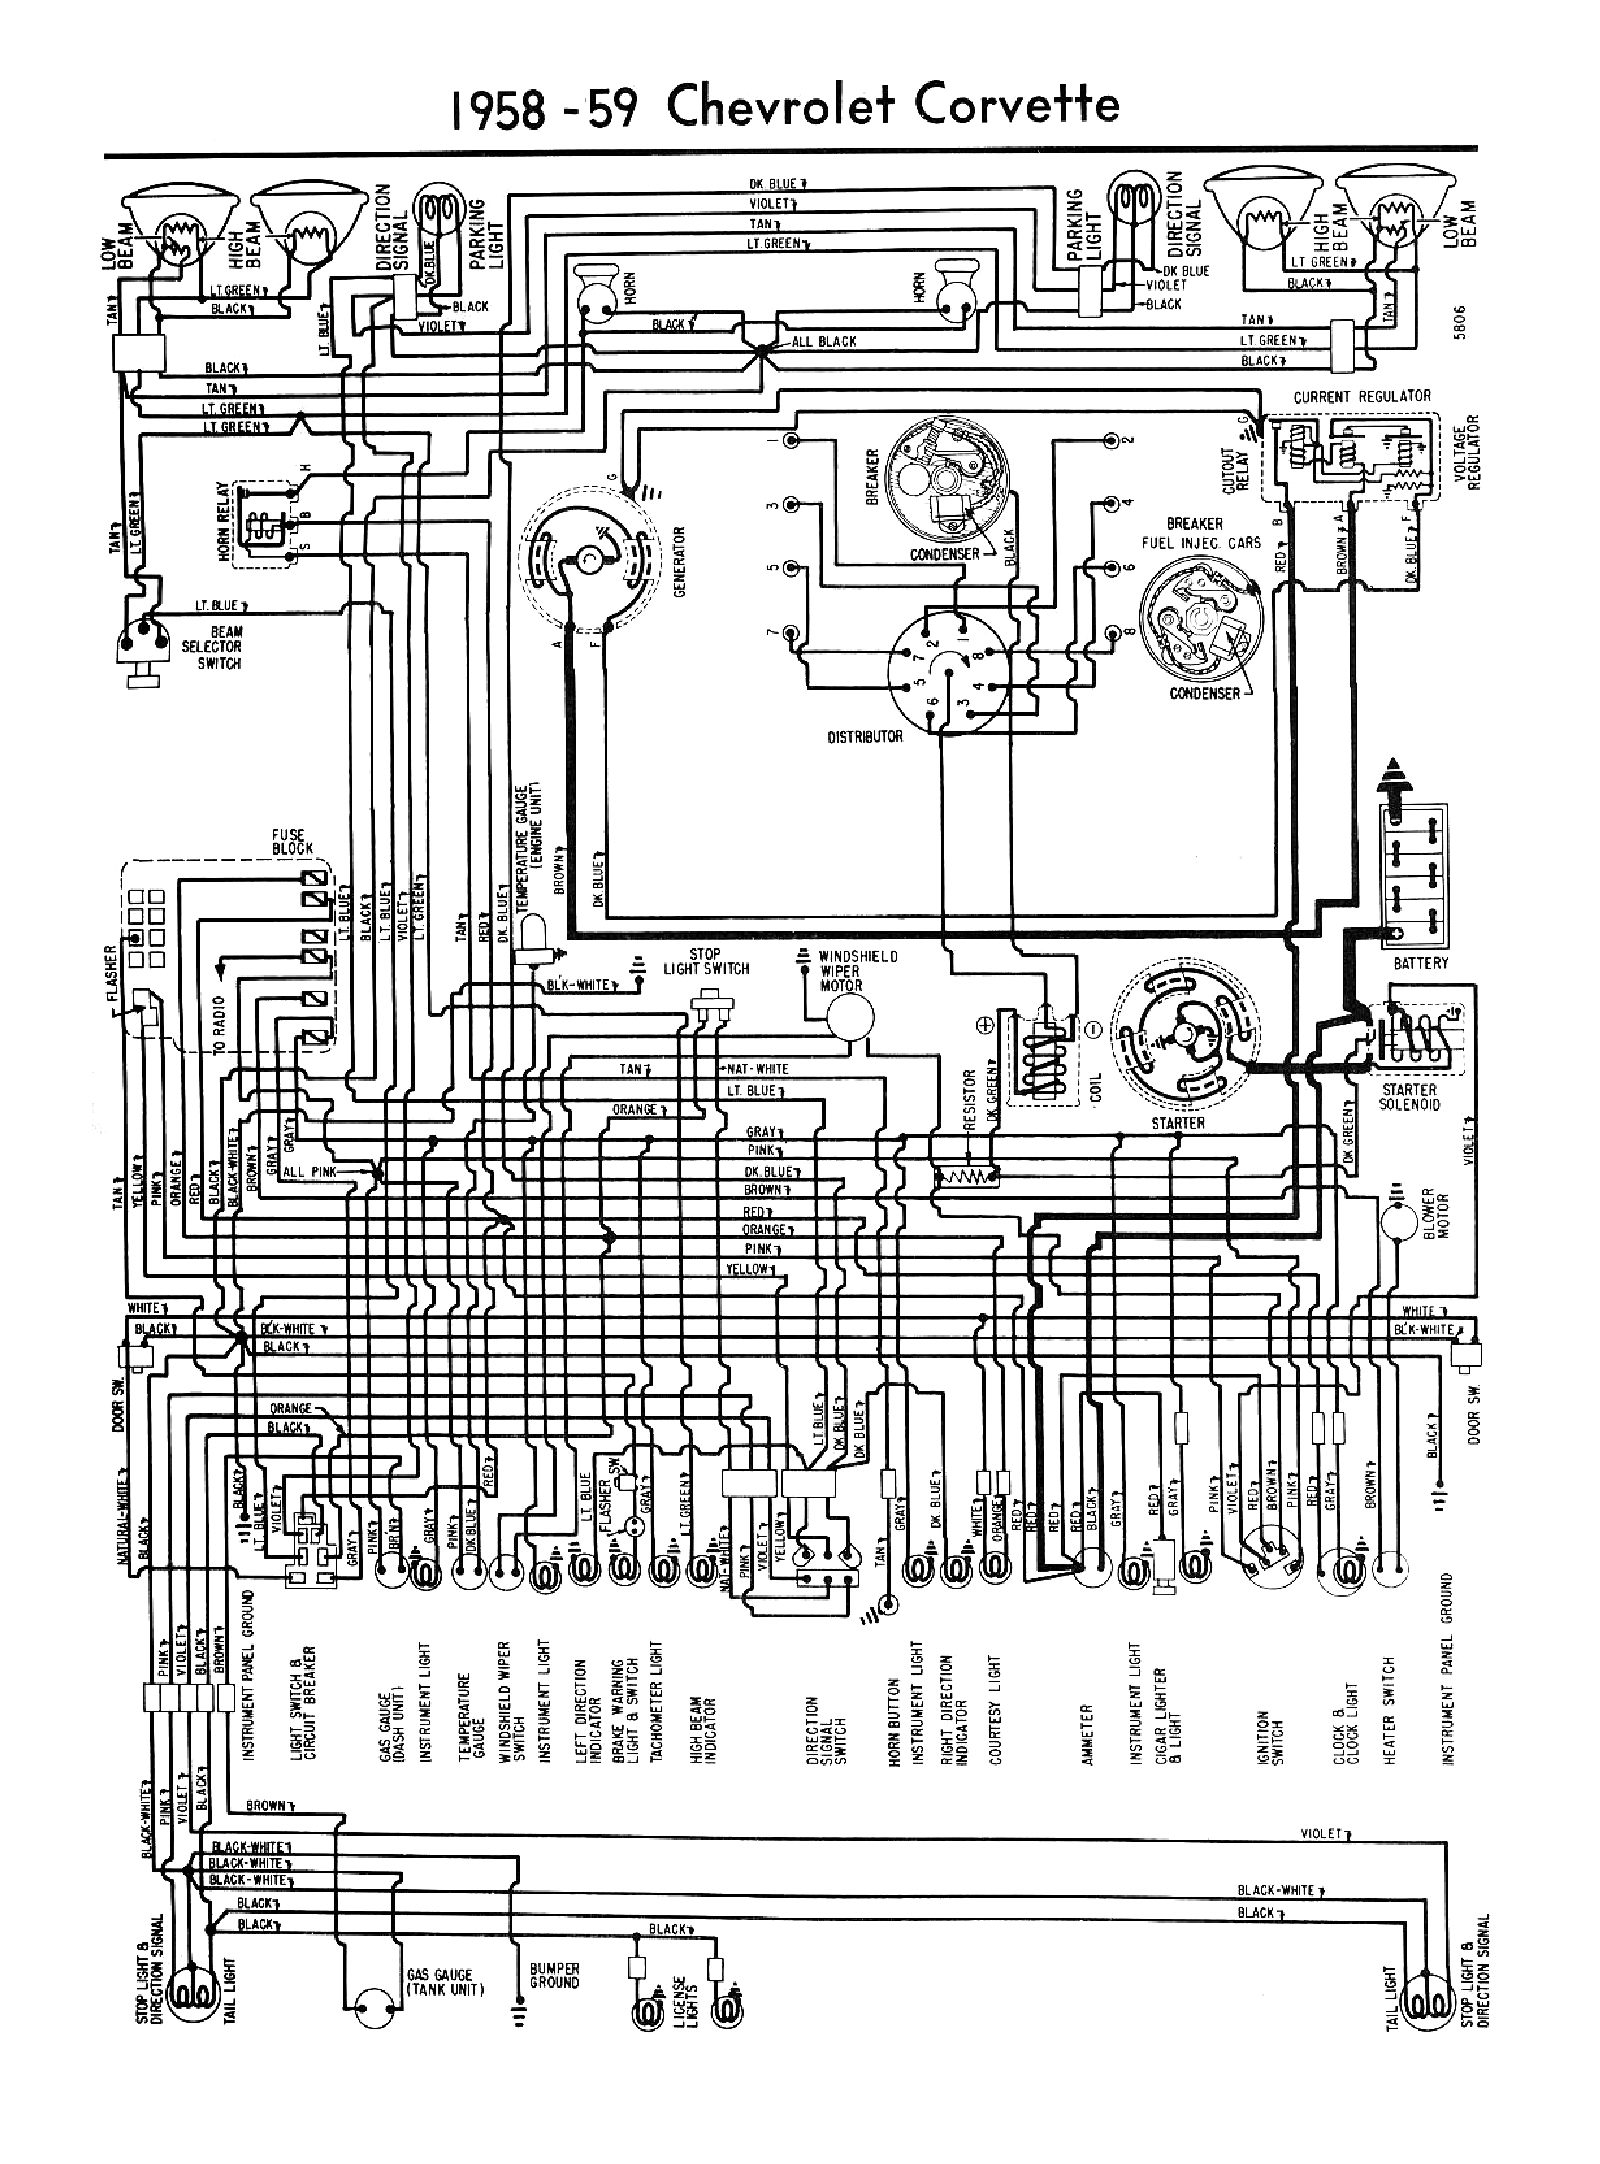 Light Switch Wiring Diagram 1981 C10 - House Wiring Diagram Symbols •